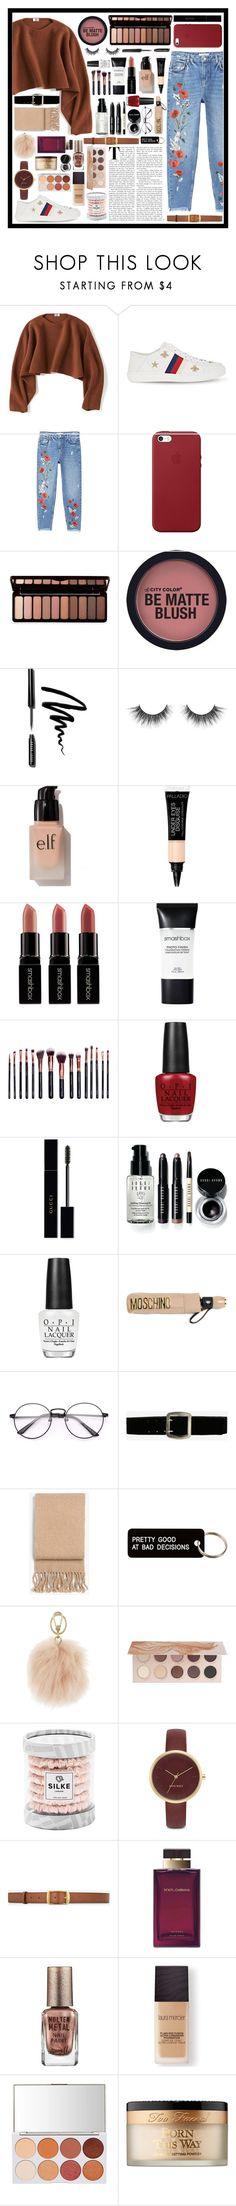 """""""First set on my new account!💓"""" by fashionbbi ❤ liked on Polyvore featuring Uniqlo, Gucci, MANGO, Apple, Forever 21, Bobbi Brown Cosmetics, e.l.f., Smashbox, M.O.T.D Cosmetics and OPI"""